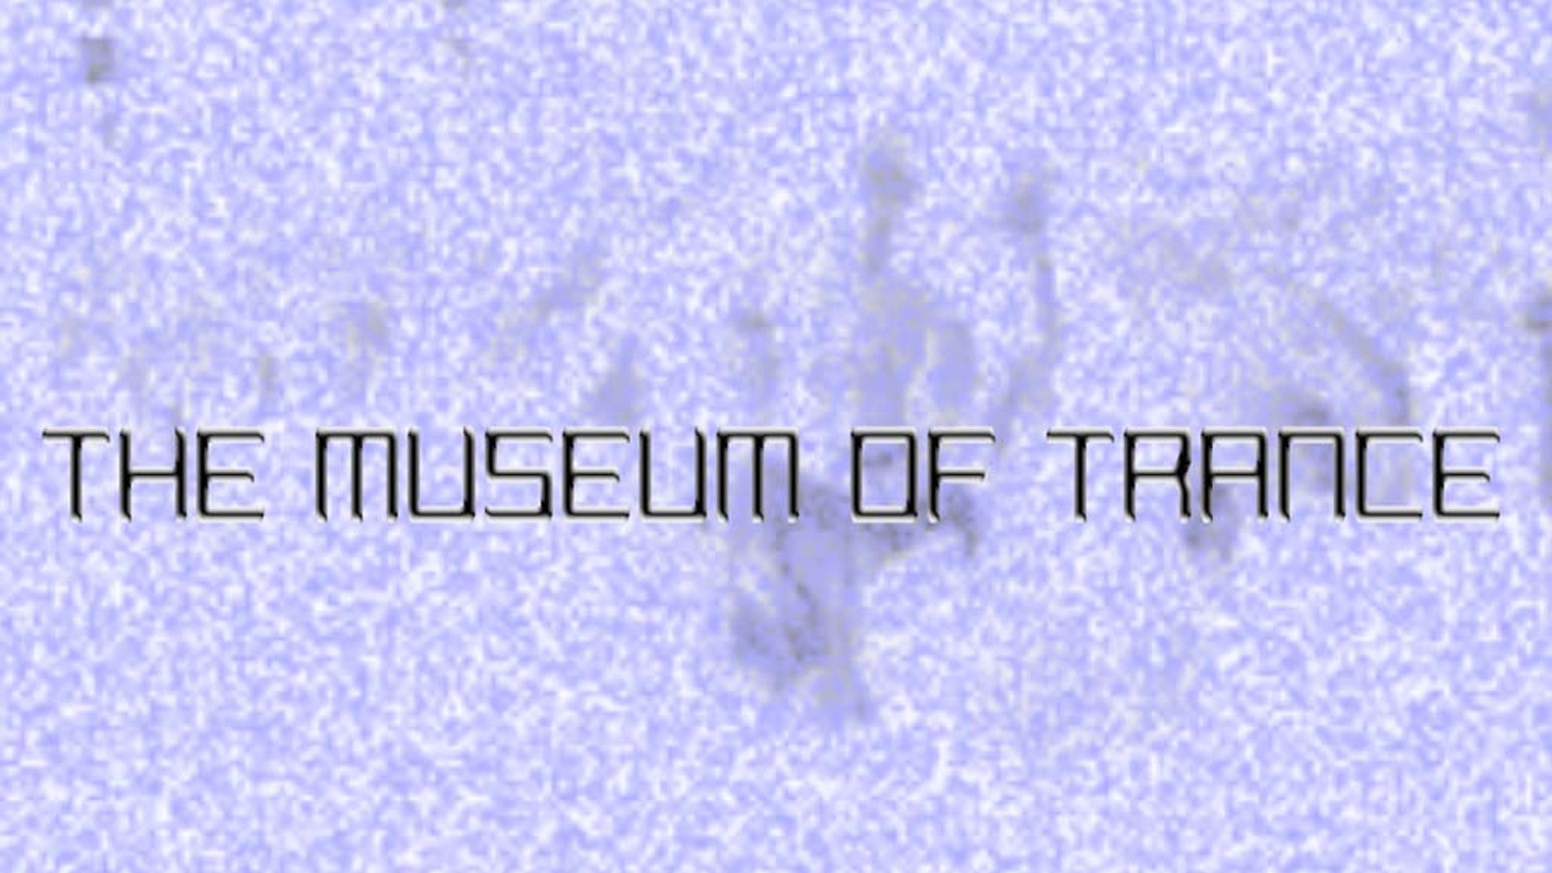 In December 2015 we will be setting up The Museum of Trance as a part of the 4th Ghetto Biennale in Port-au-Prince, Haiti